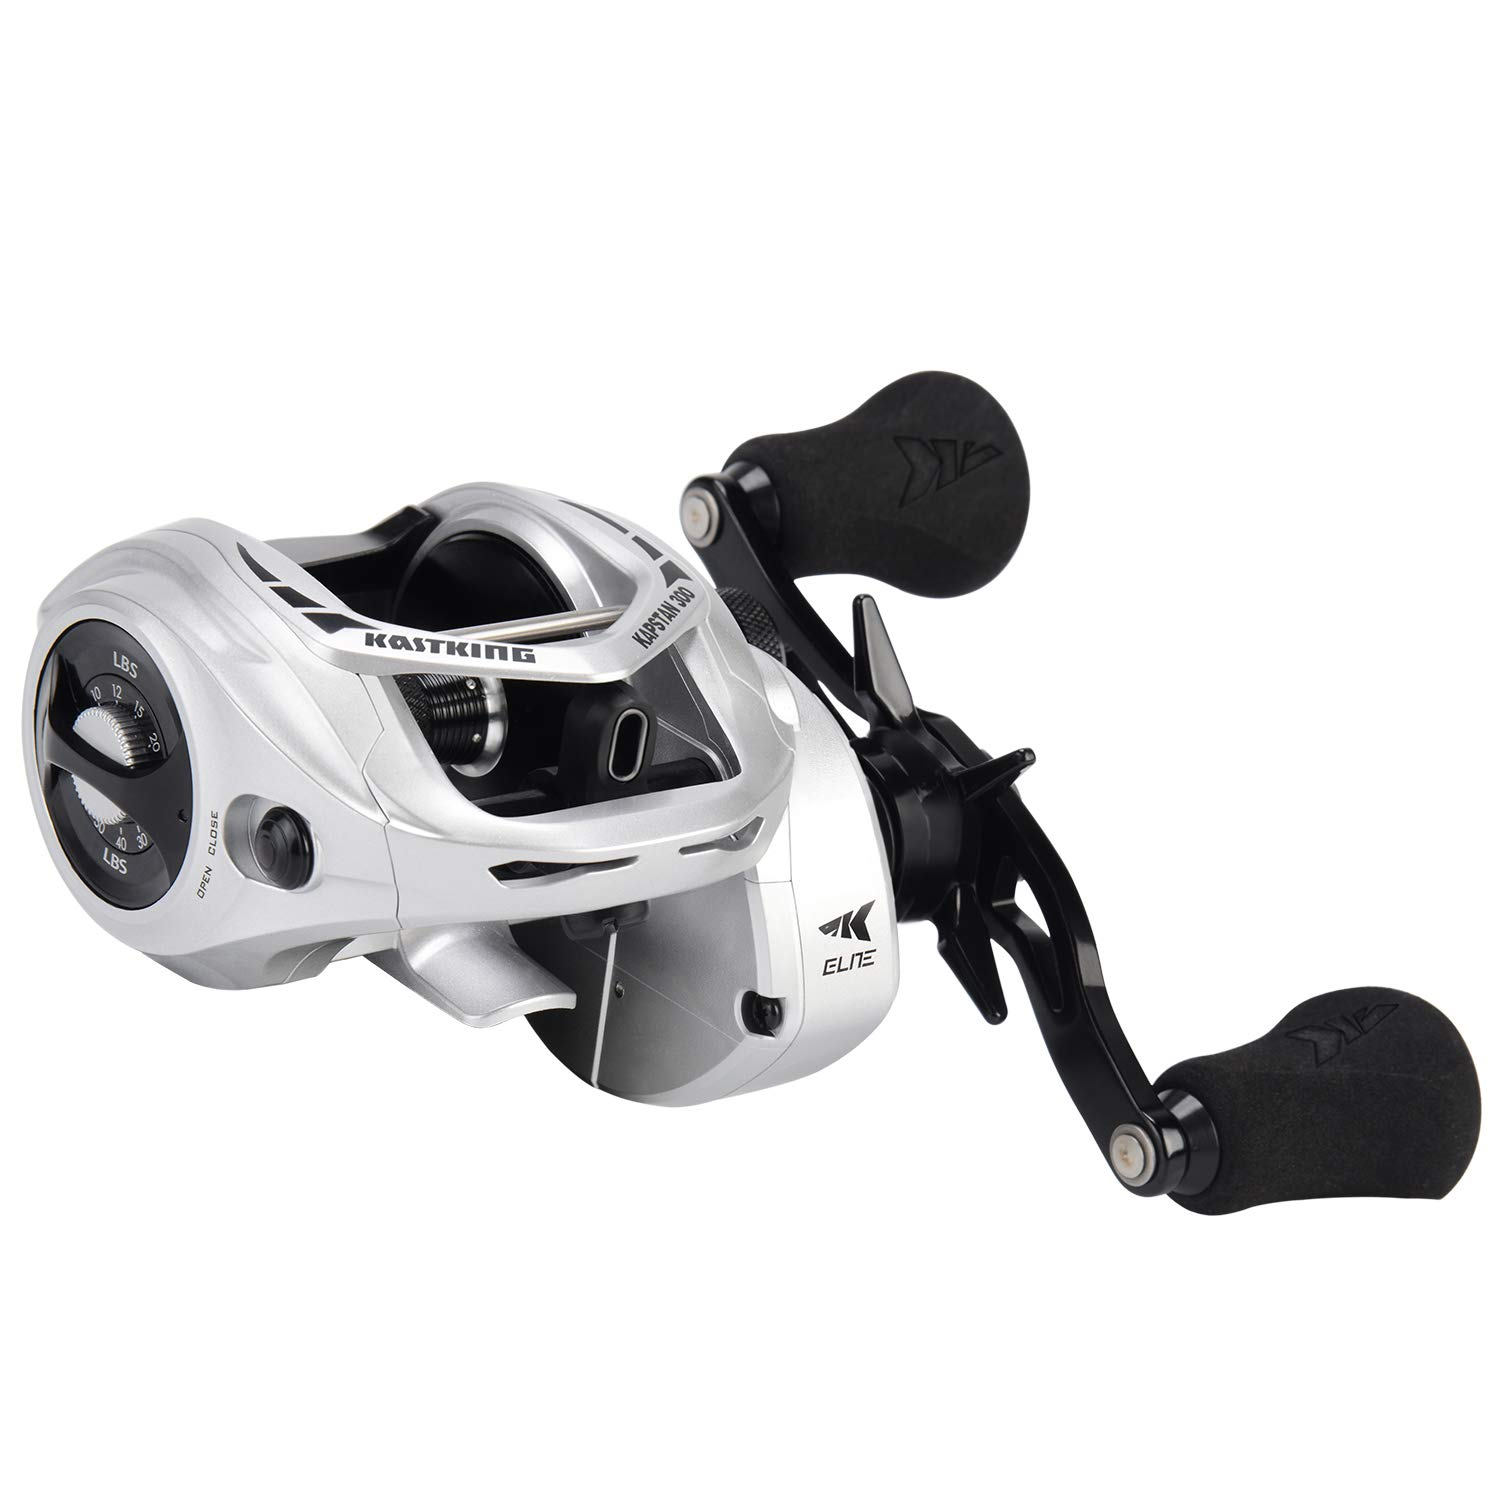 KastKing Kapstan Elite Size 300 Baitcasting Fishing Reel, Low Profile Baitcasters, Large Capacity Casting Reel, 35 lbs. Drag, 5.4 1 Ratio, 8 1 Stainless Steel Ball Bearings, Centrifugal Brakes.